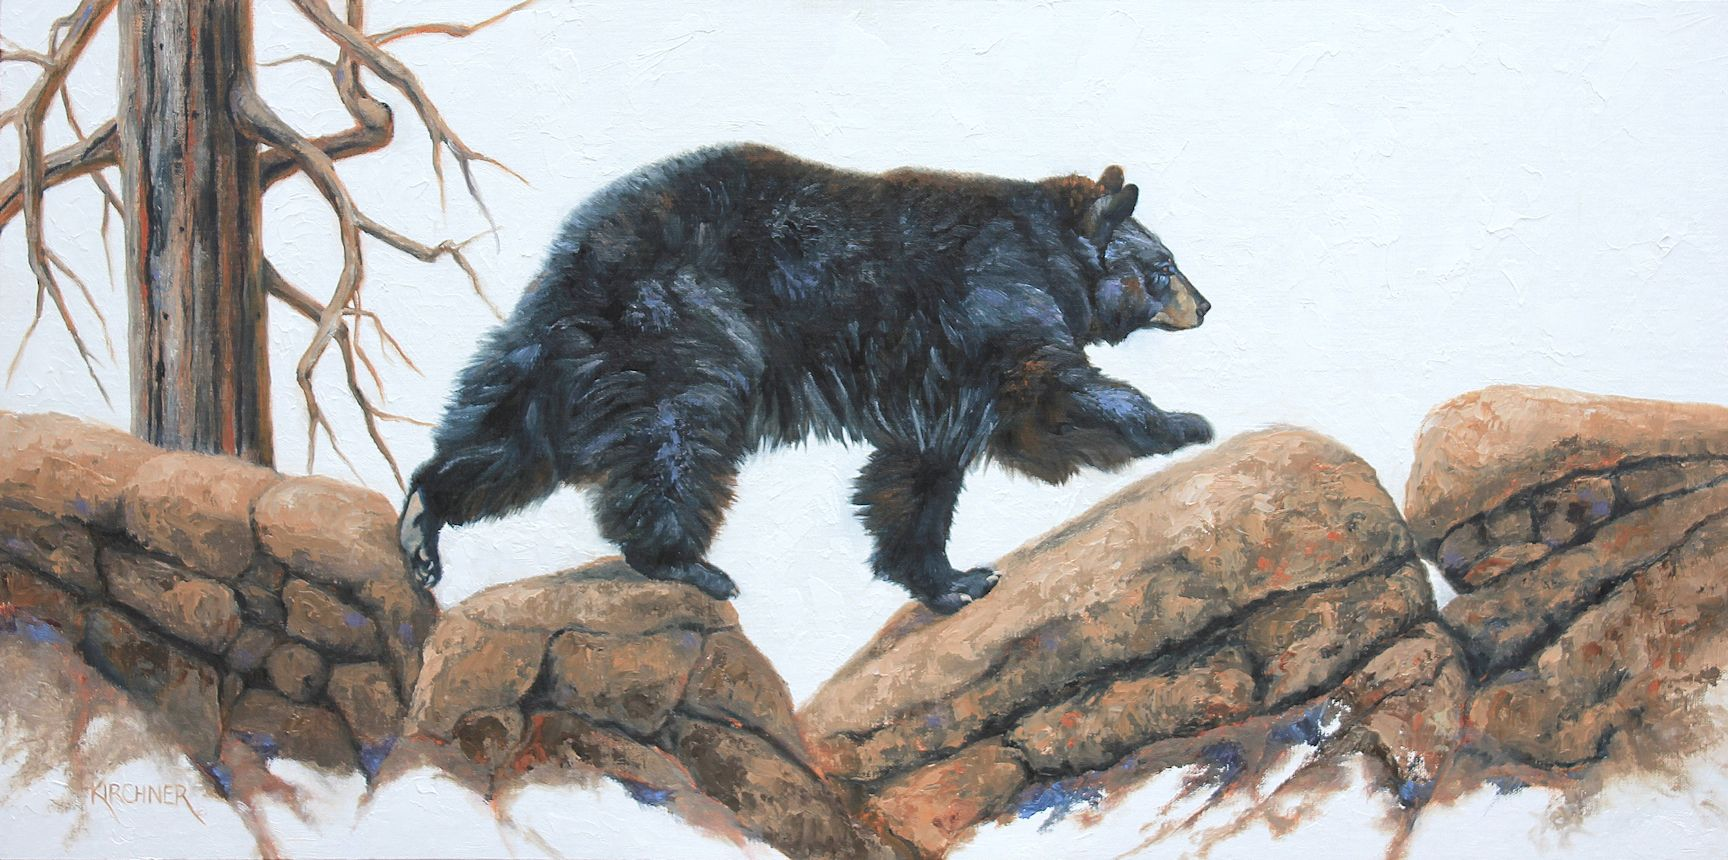 Leslie Kirchner, leslie kirchner art, lesliekirchner artist, wildlife artist, western artist, nature artist, western art, wildlife art, nature art, black bear, black bear walking, black bear art, black bear painting, black bears, ursus americanus